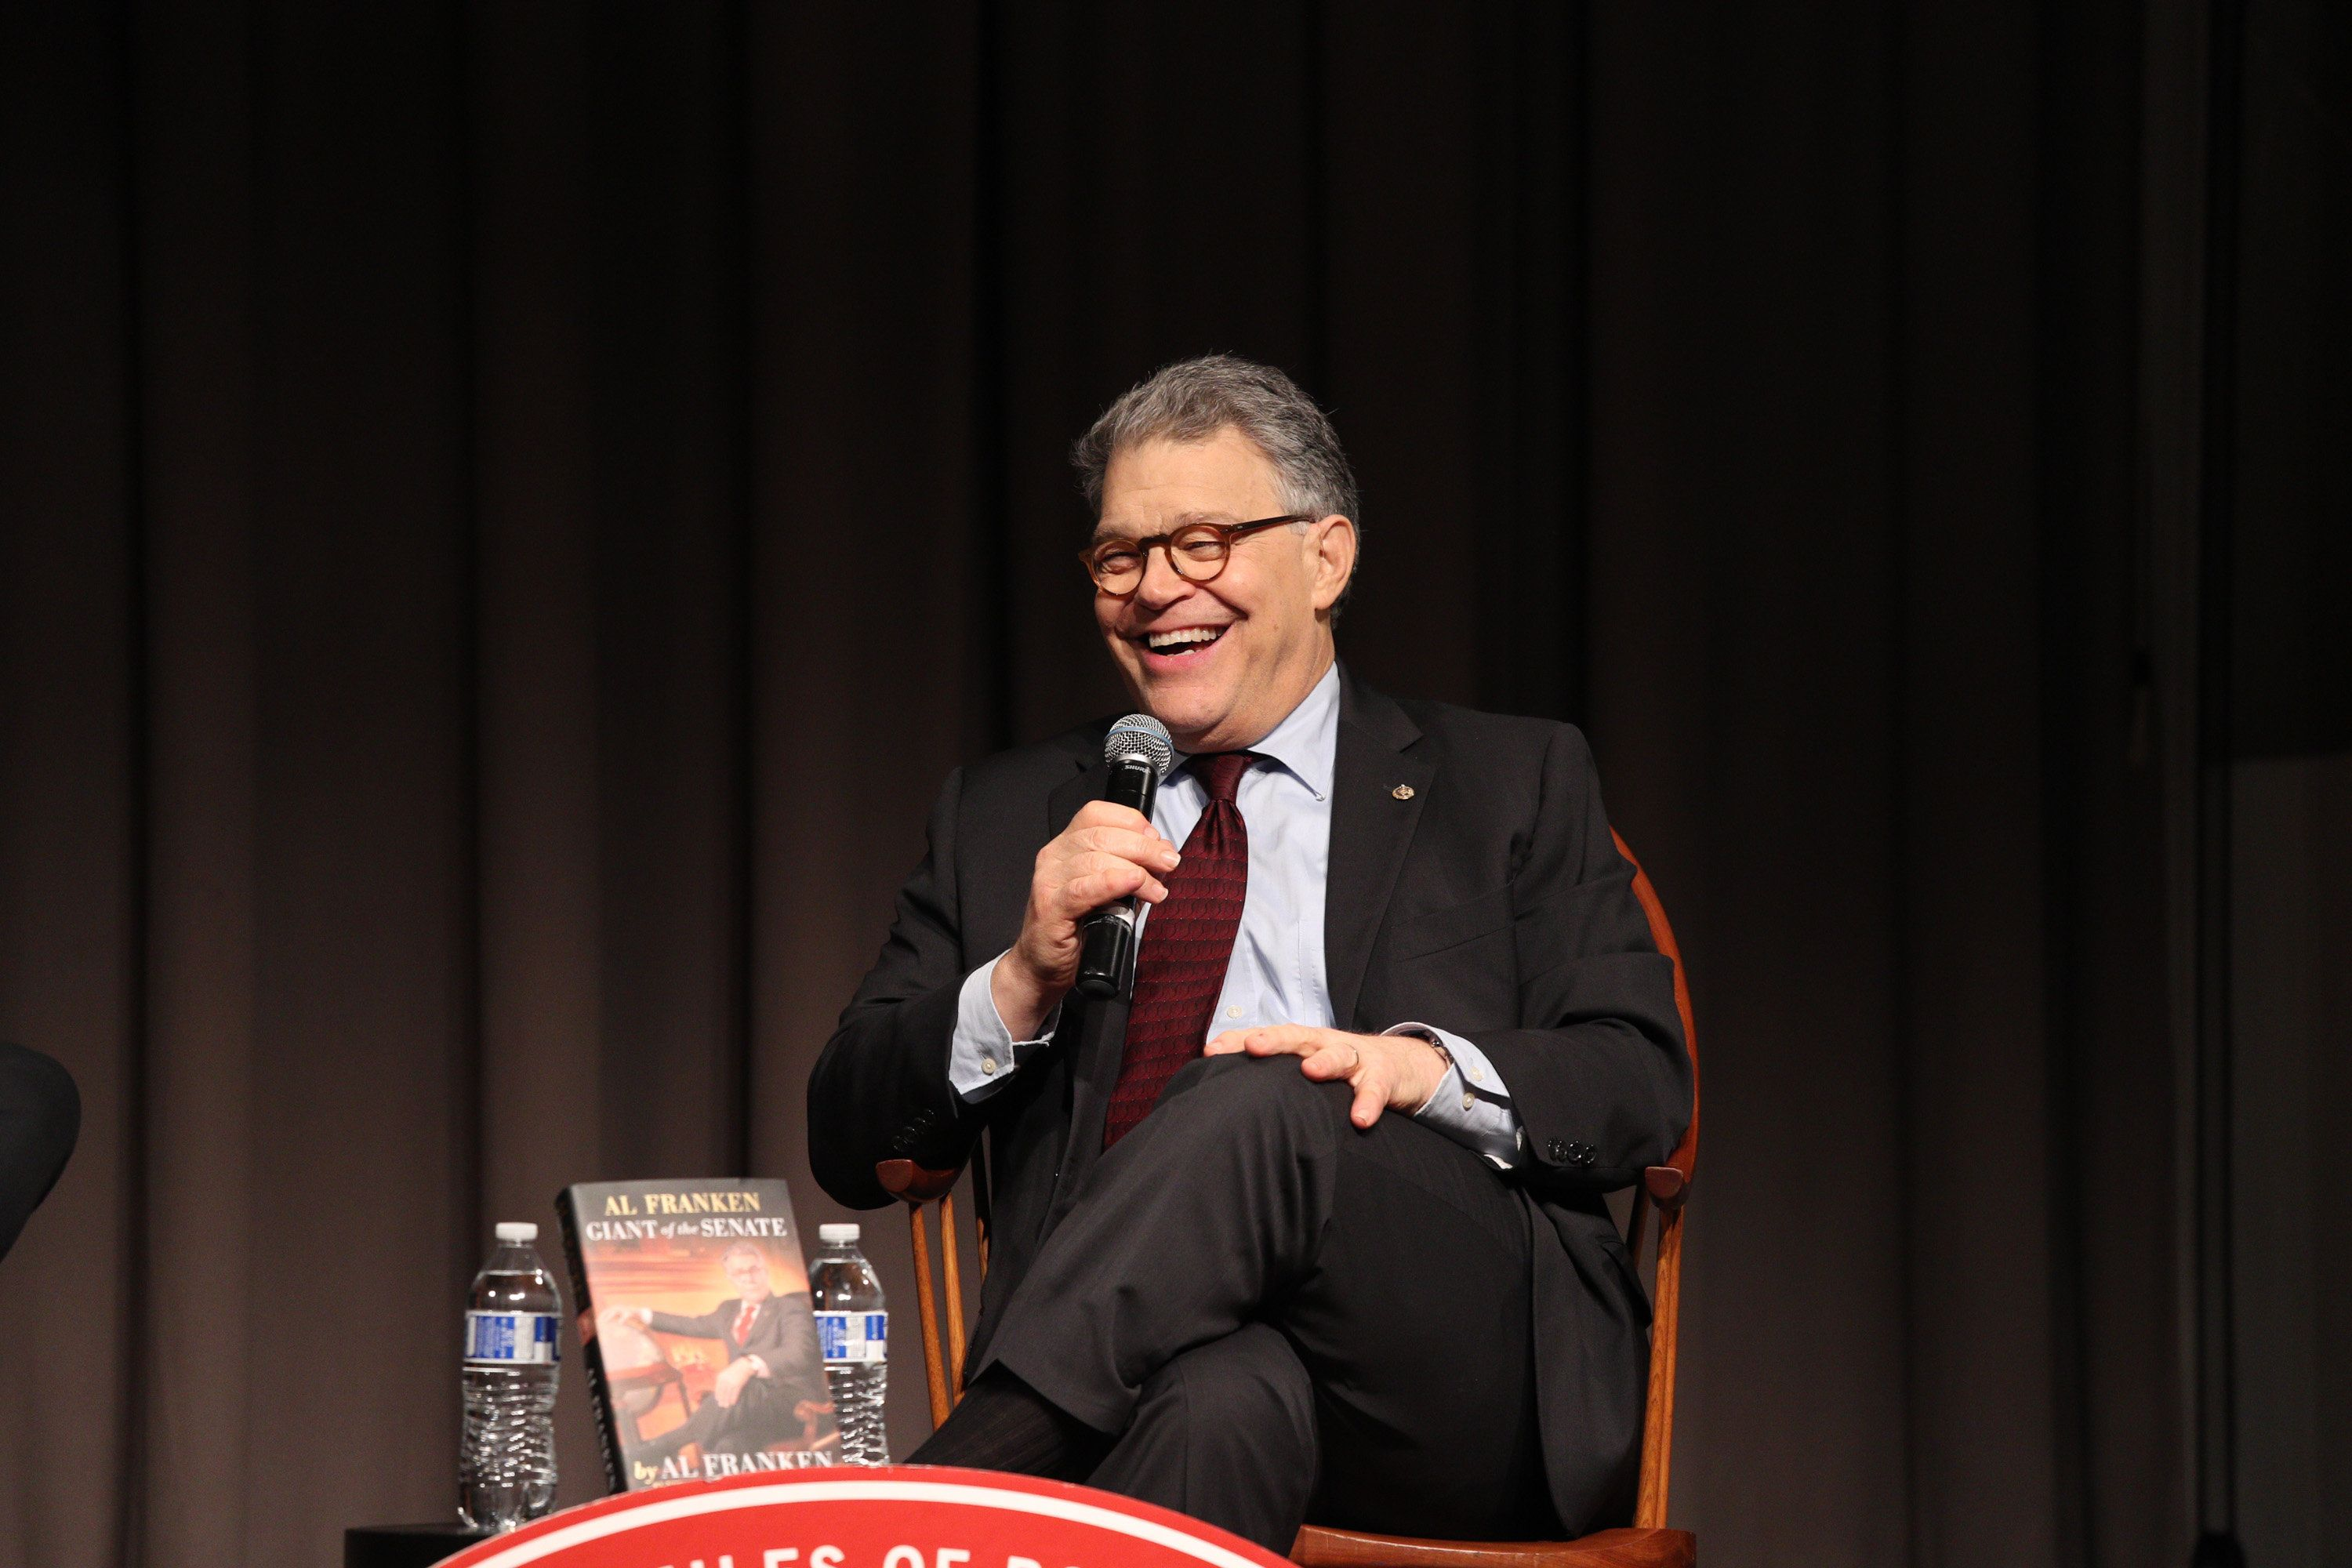 Al Franken: 'I make fun of the people who deserved it'